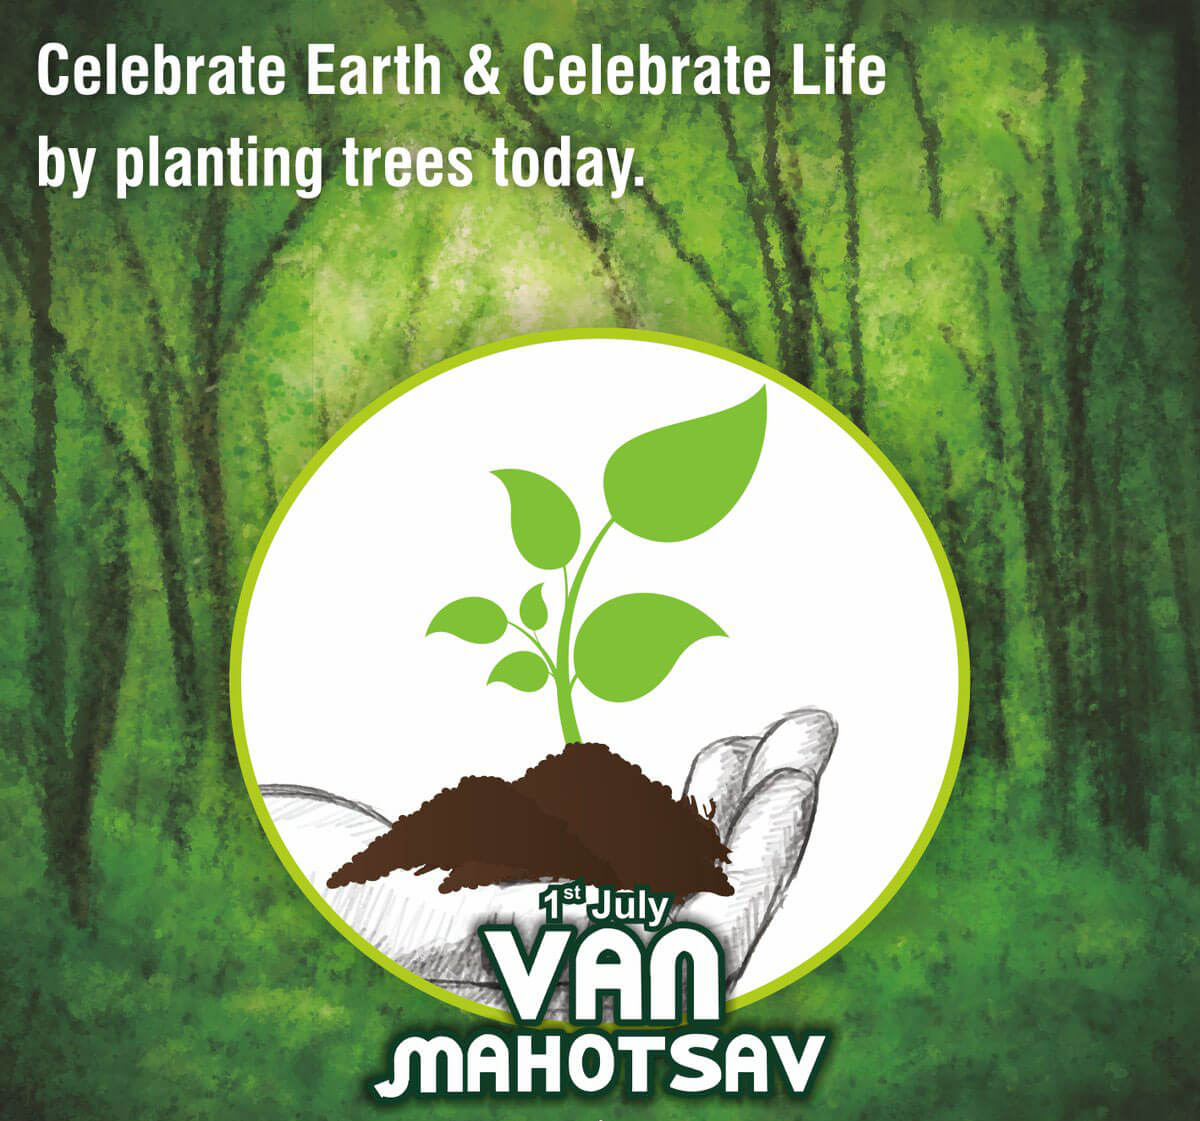 van mahotsav day green tree planting save earth nature picture